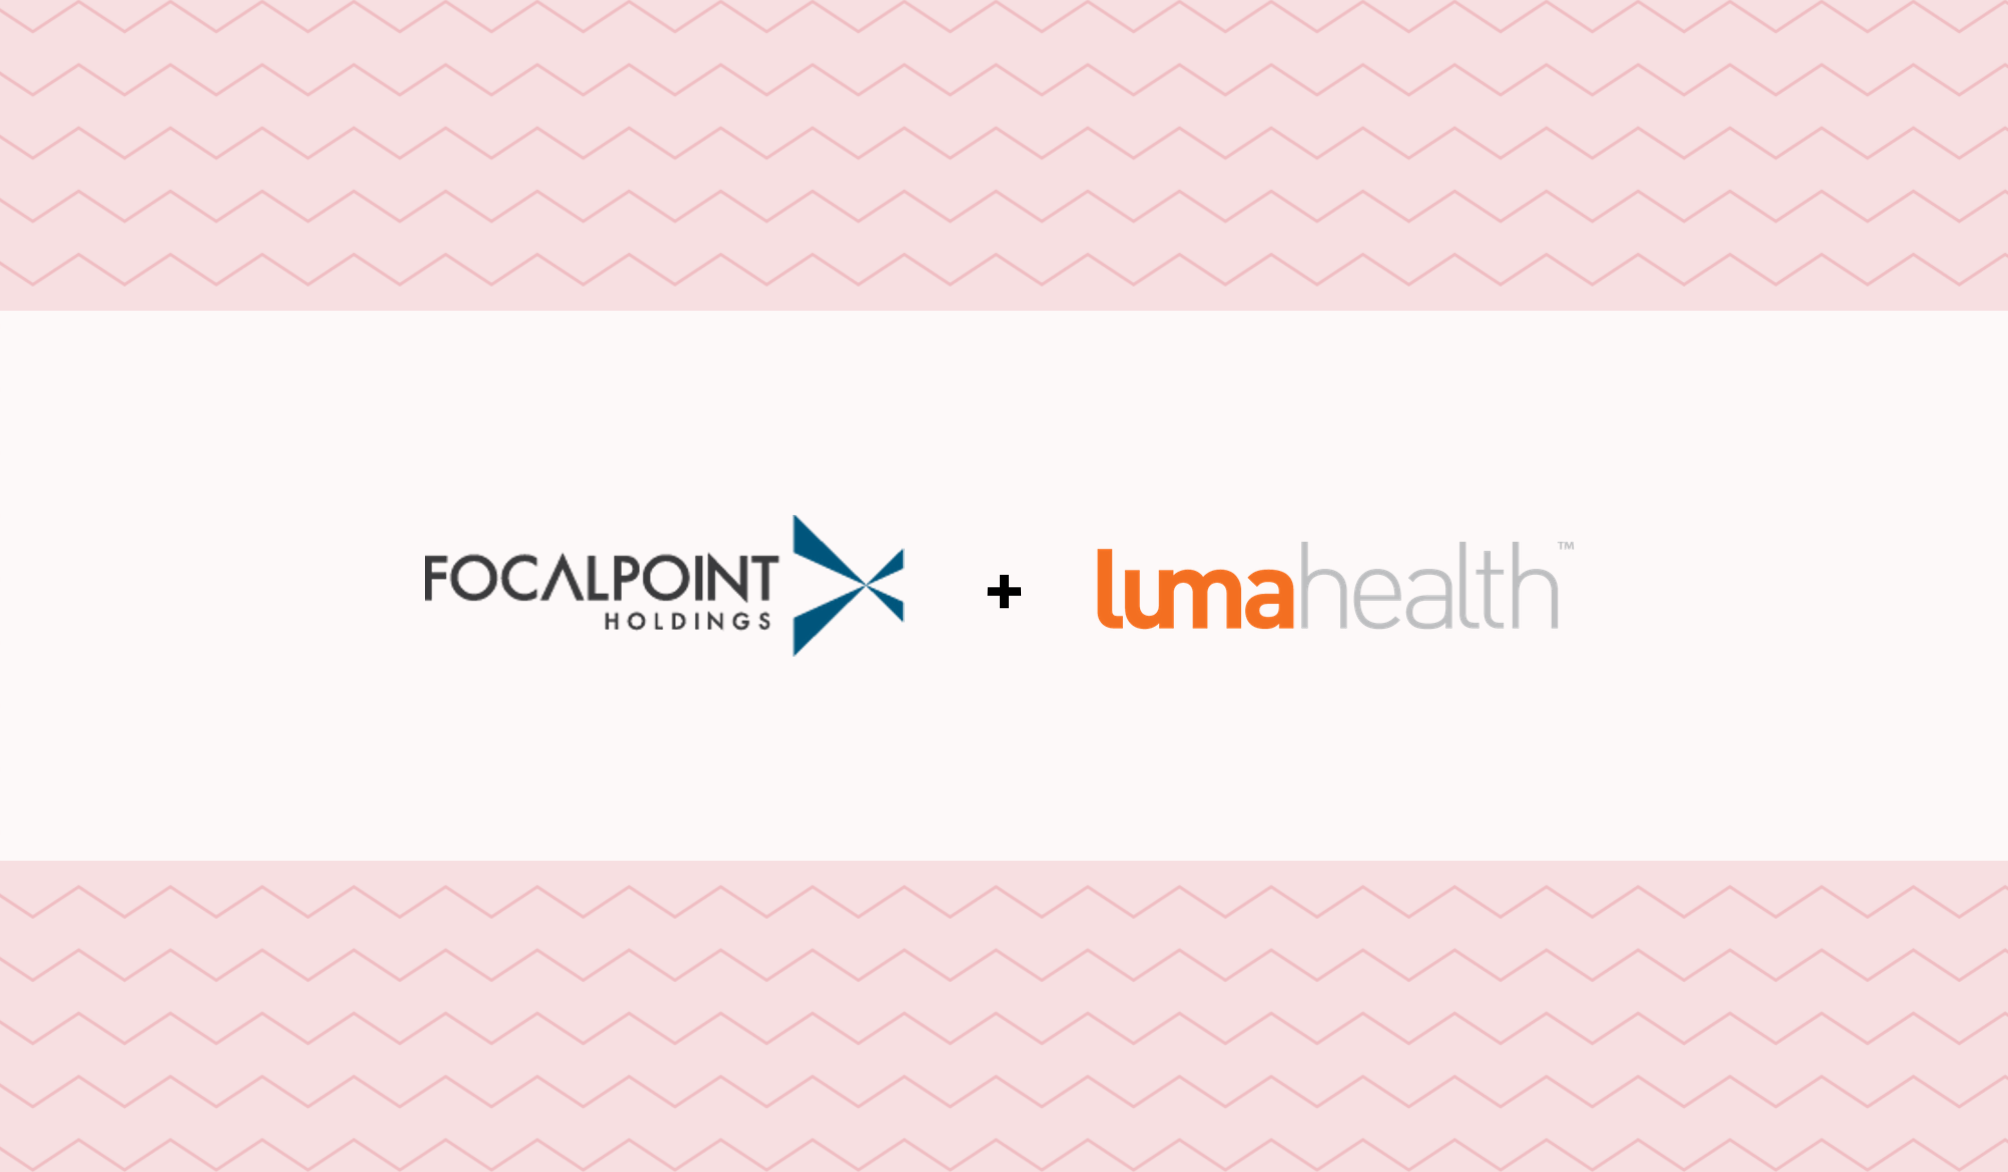 FocalPoint Holdings and Luma Health Announce Partnership